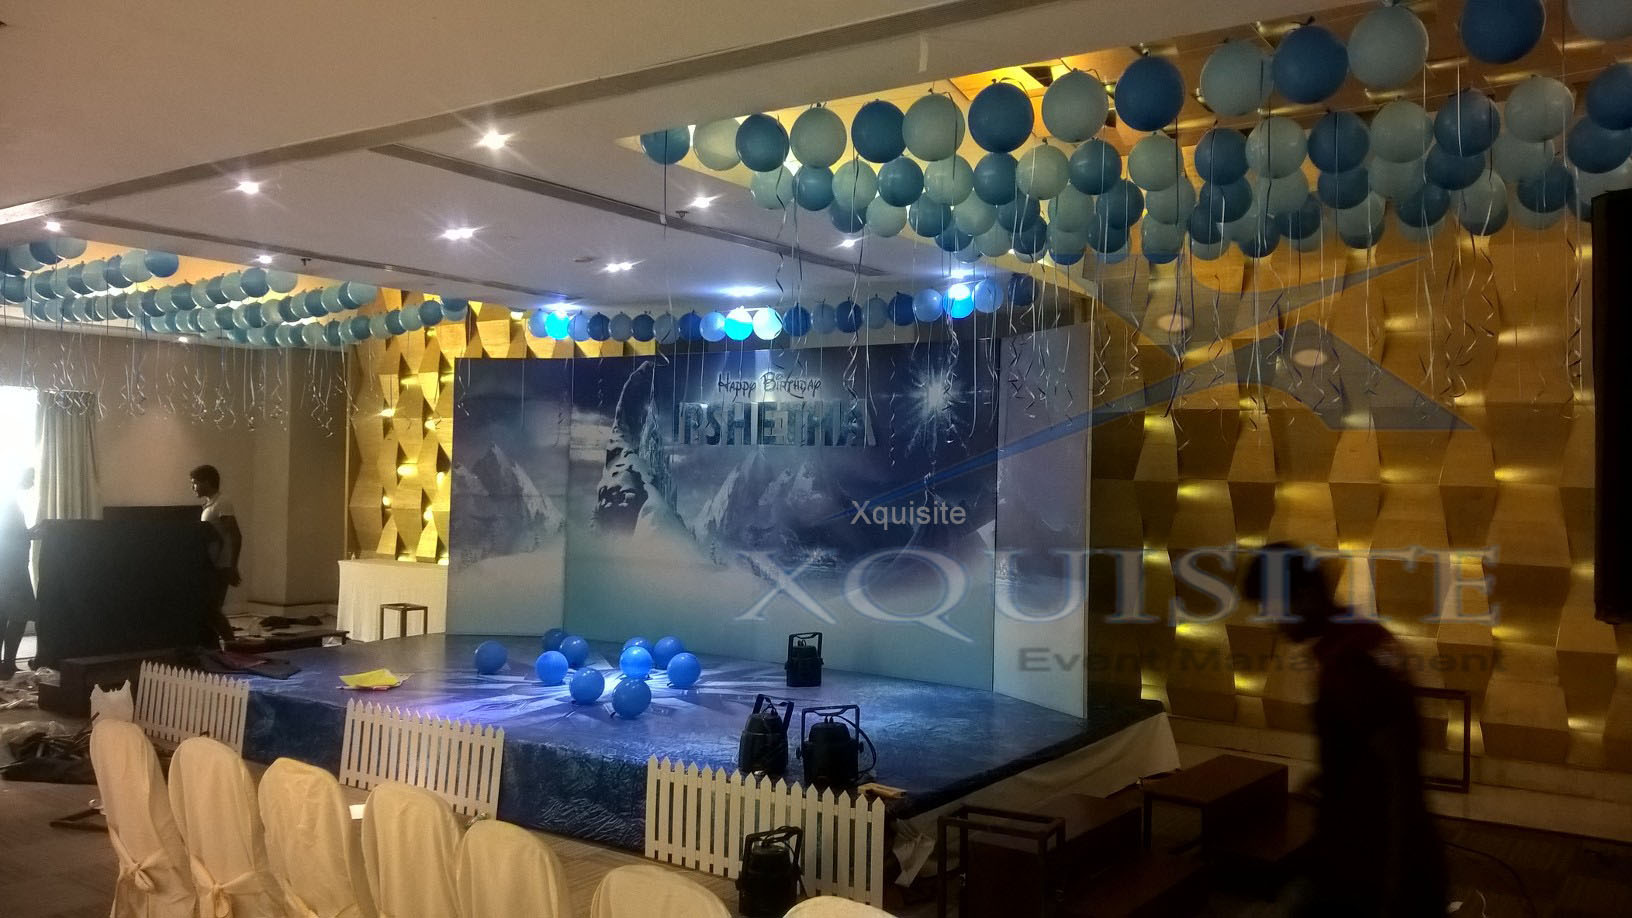 Theme based event conducted by Xquisite Event Management.